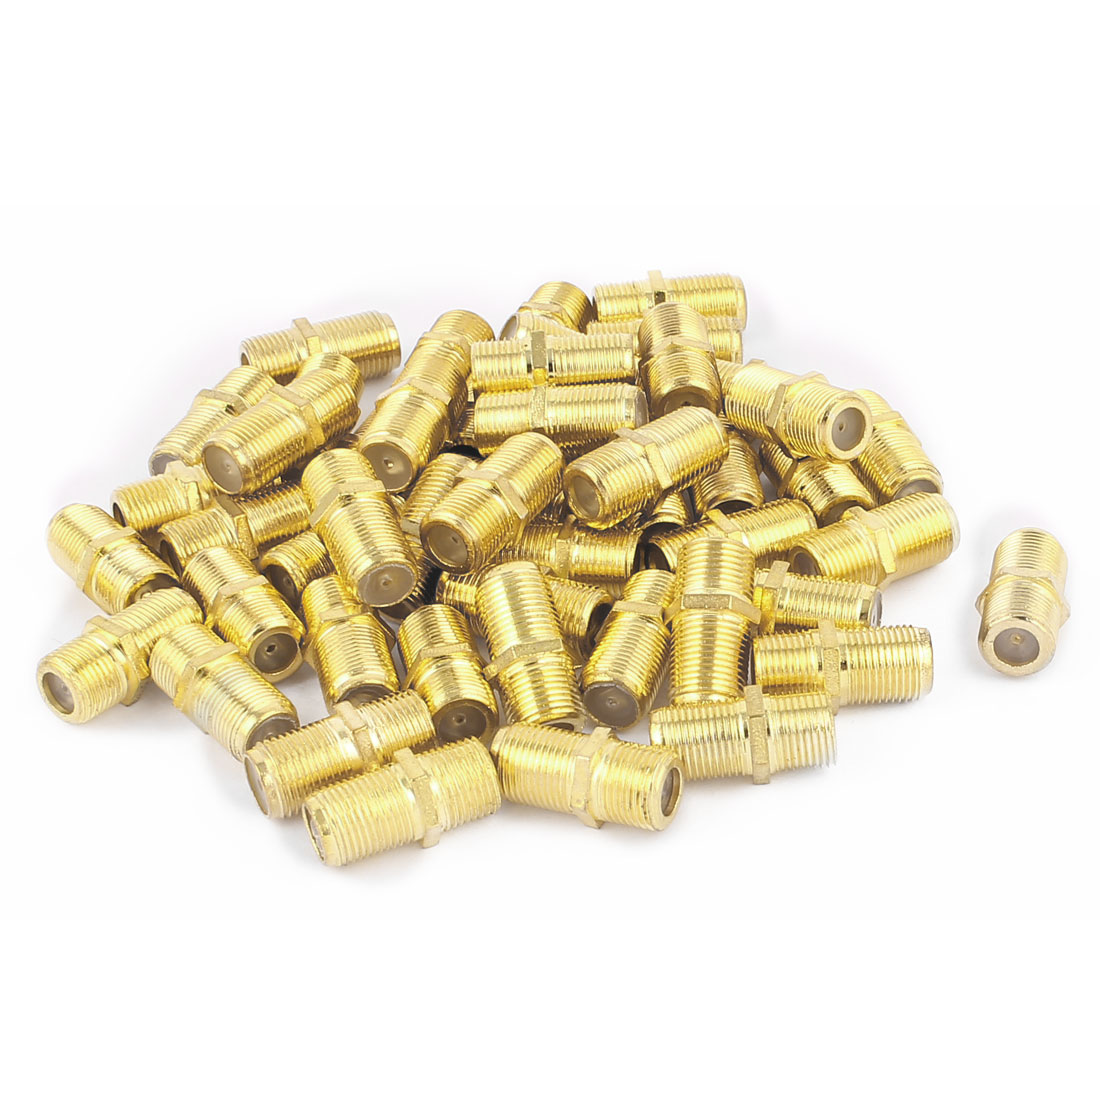 50Pcs Gold Plated F Type Female to Female Straight RF Coax TV Adapter Connectors